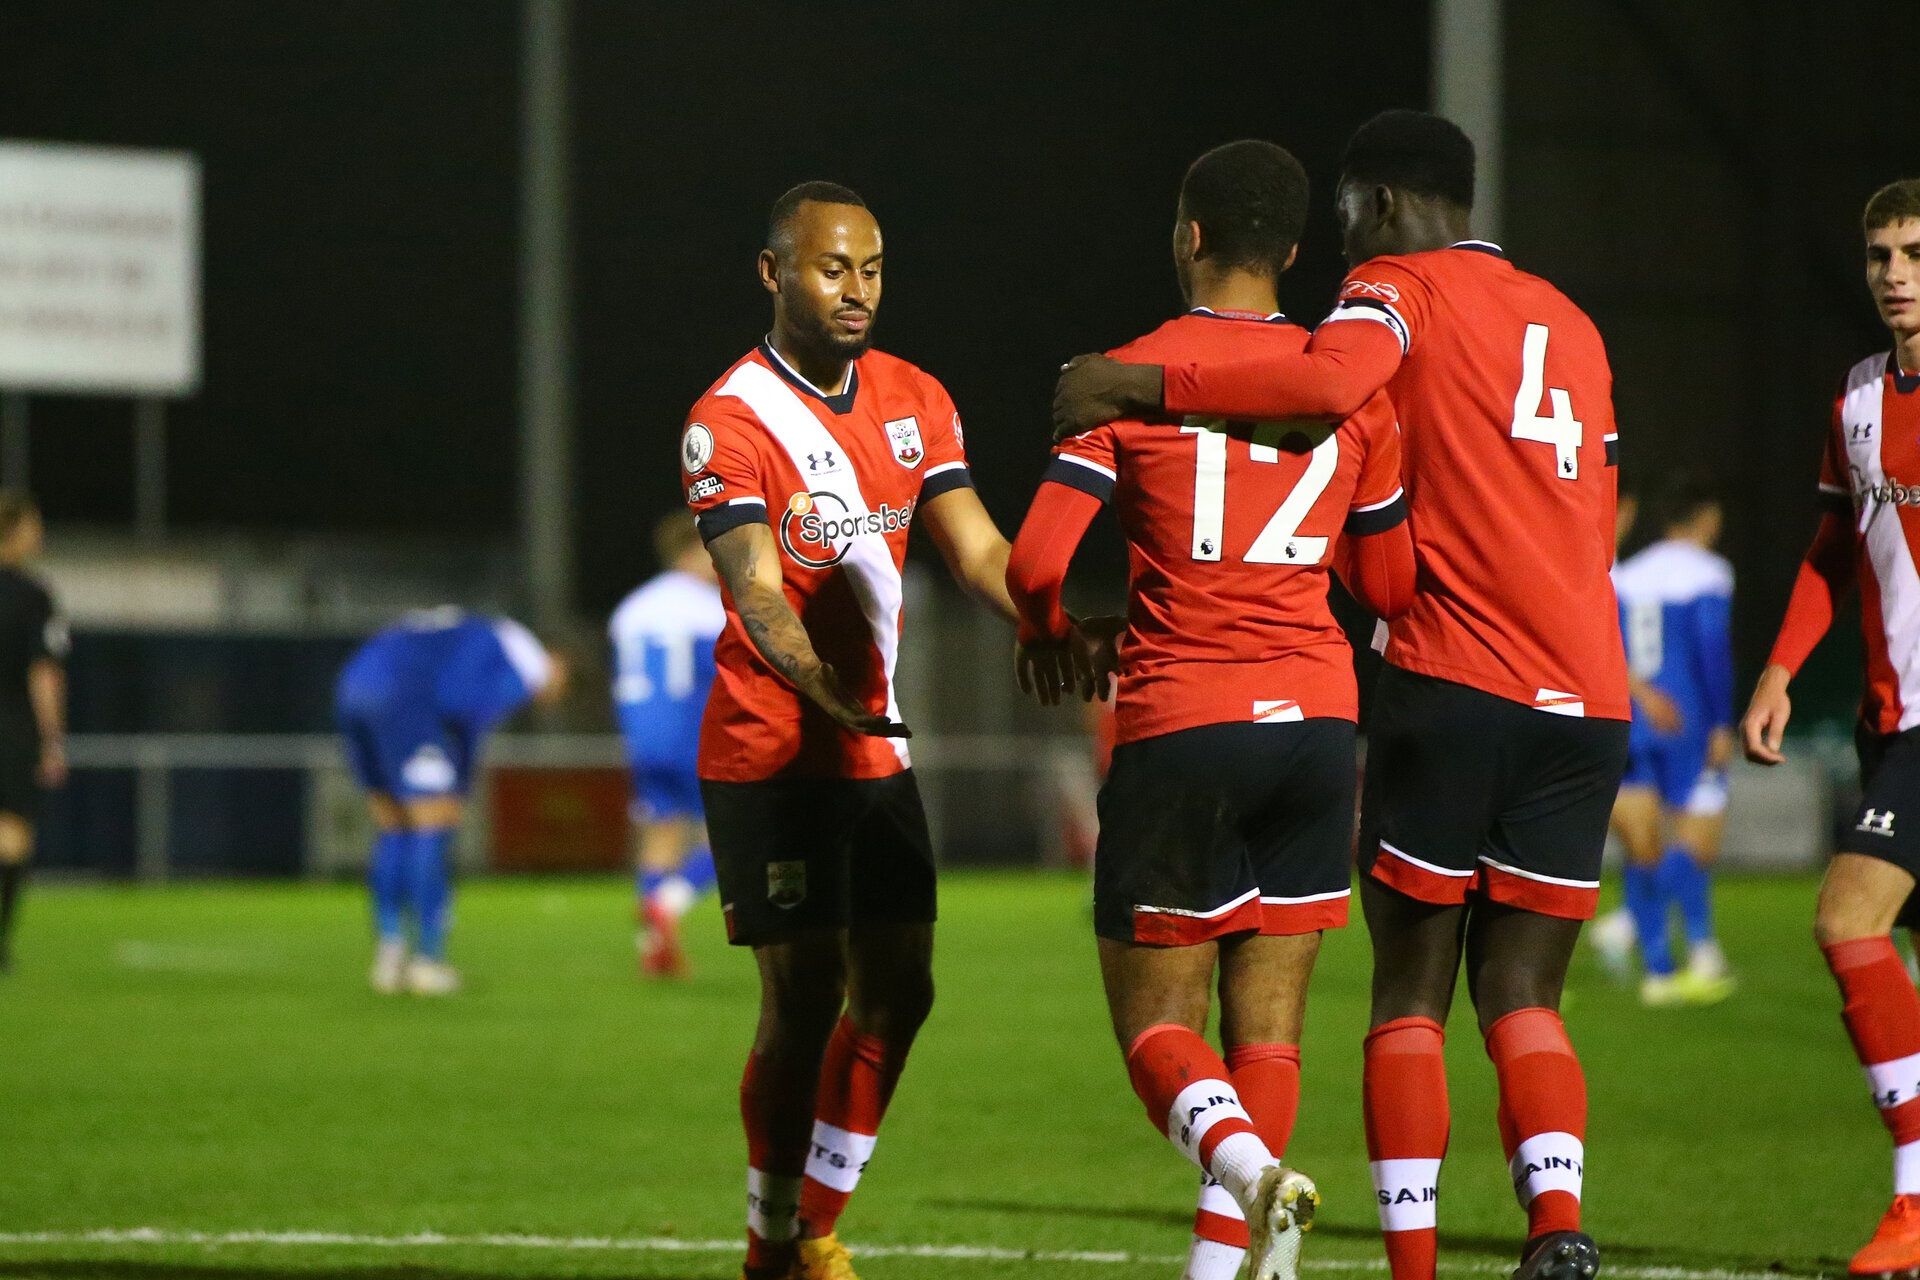 SOUTHAMPTON, ENGLAND - NOVEMBER 02: <<enter caption here>> during the Hampshire FA Senior Cup semi-final between Eastleigh FC and Southampton FC B Team at Silverlake Stadium on November 02, 2020 in Southampton, England. (Photo by Isabelle Field/Southampton FC via Getty Images) (Photo by Isabelle Field/Isabelle Field)